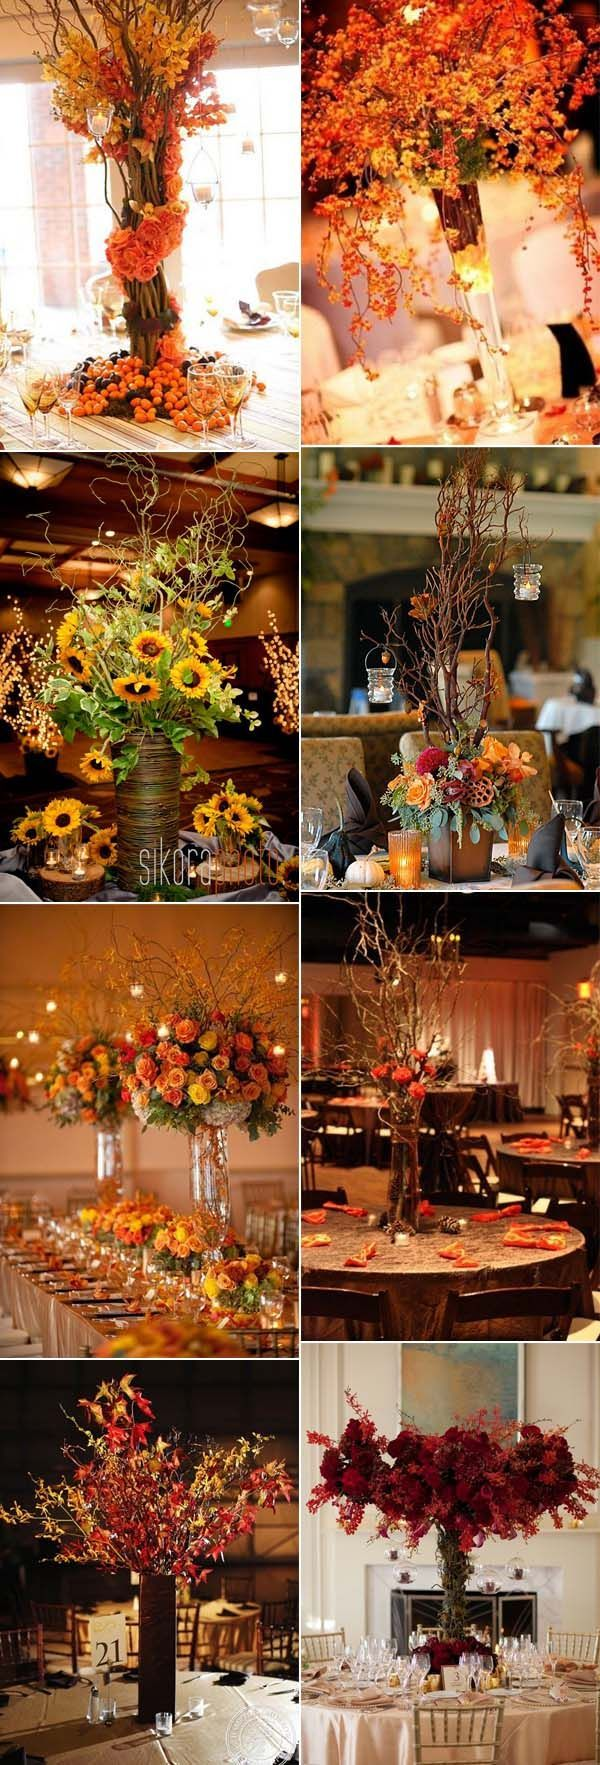 Fall is an amazing season for wedding party. The color palettes, the rich tones and the textures are just so beautiful. And today, we have rounded up 46 wedding